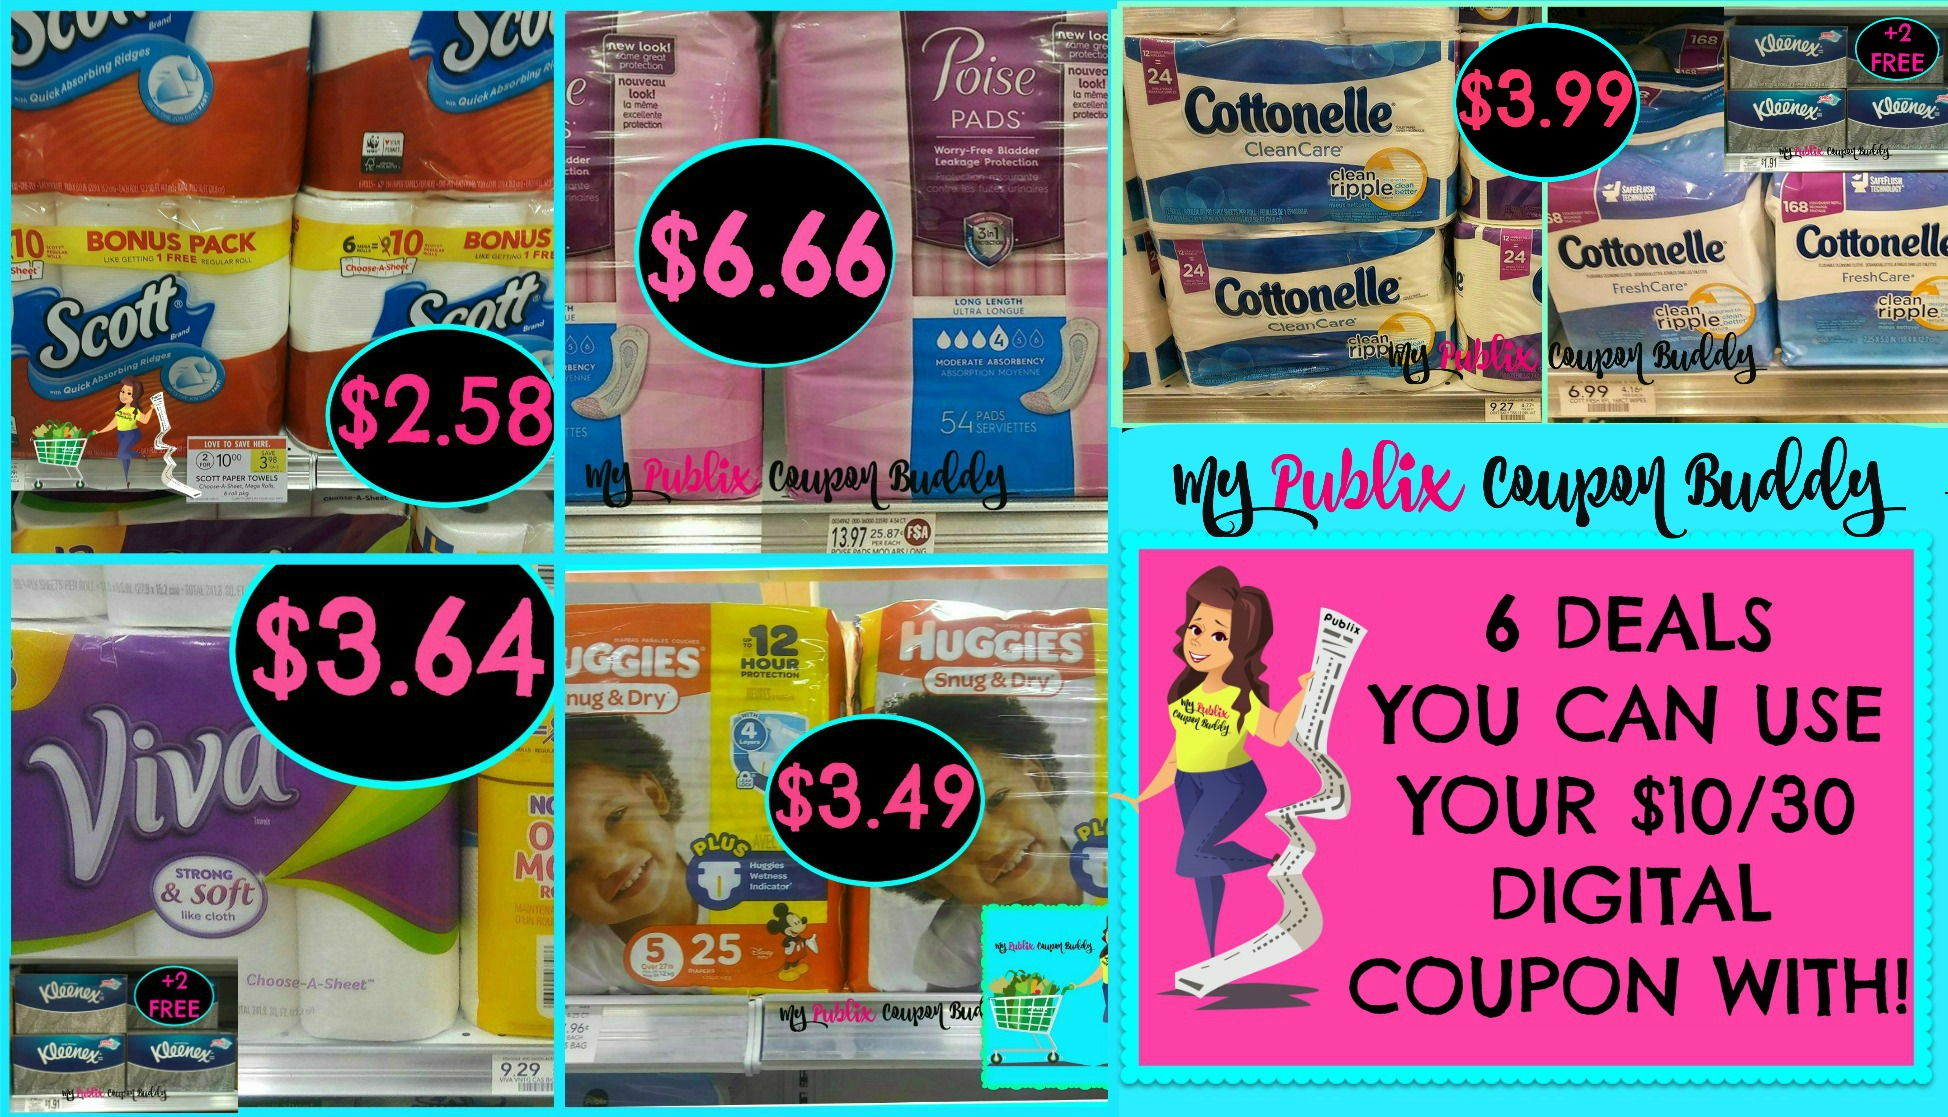 6 Deals you can use your digital $10 $30 coupon with at Publix